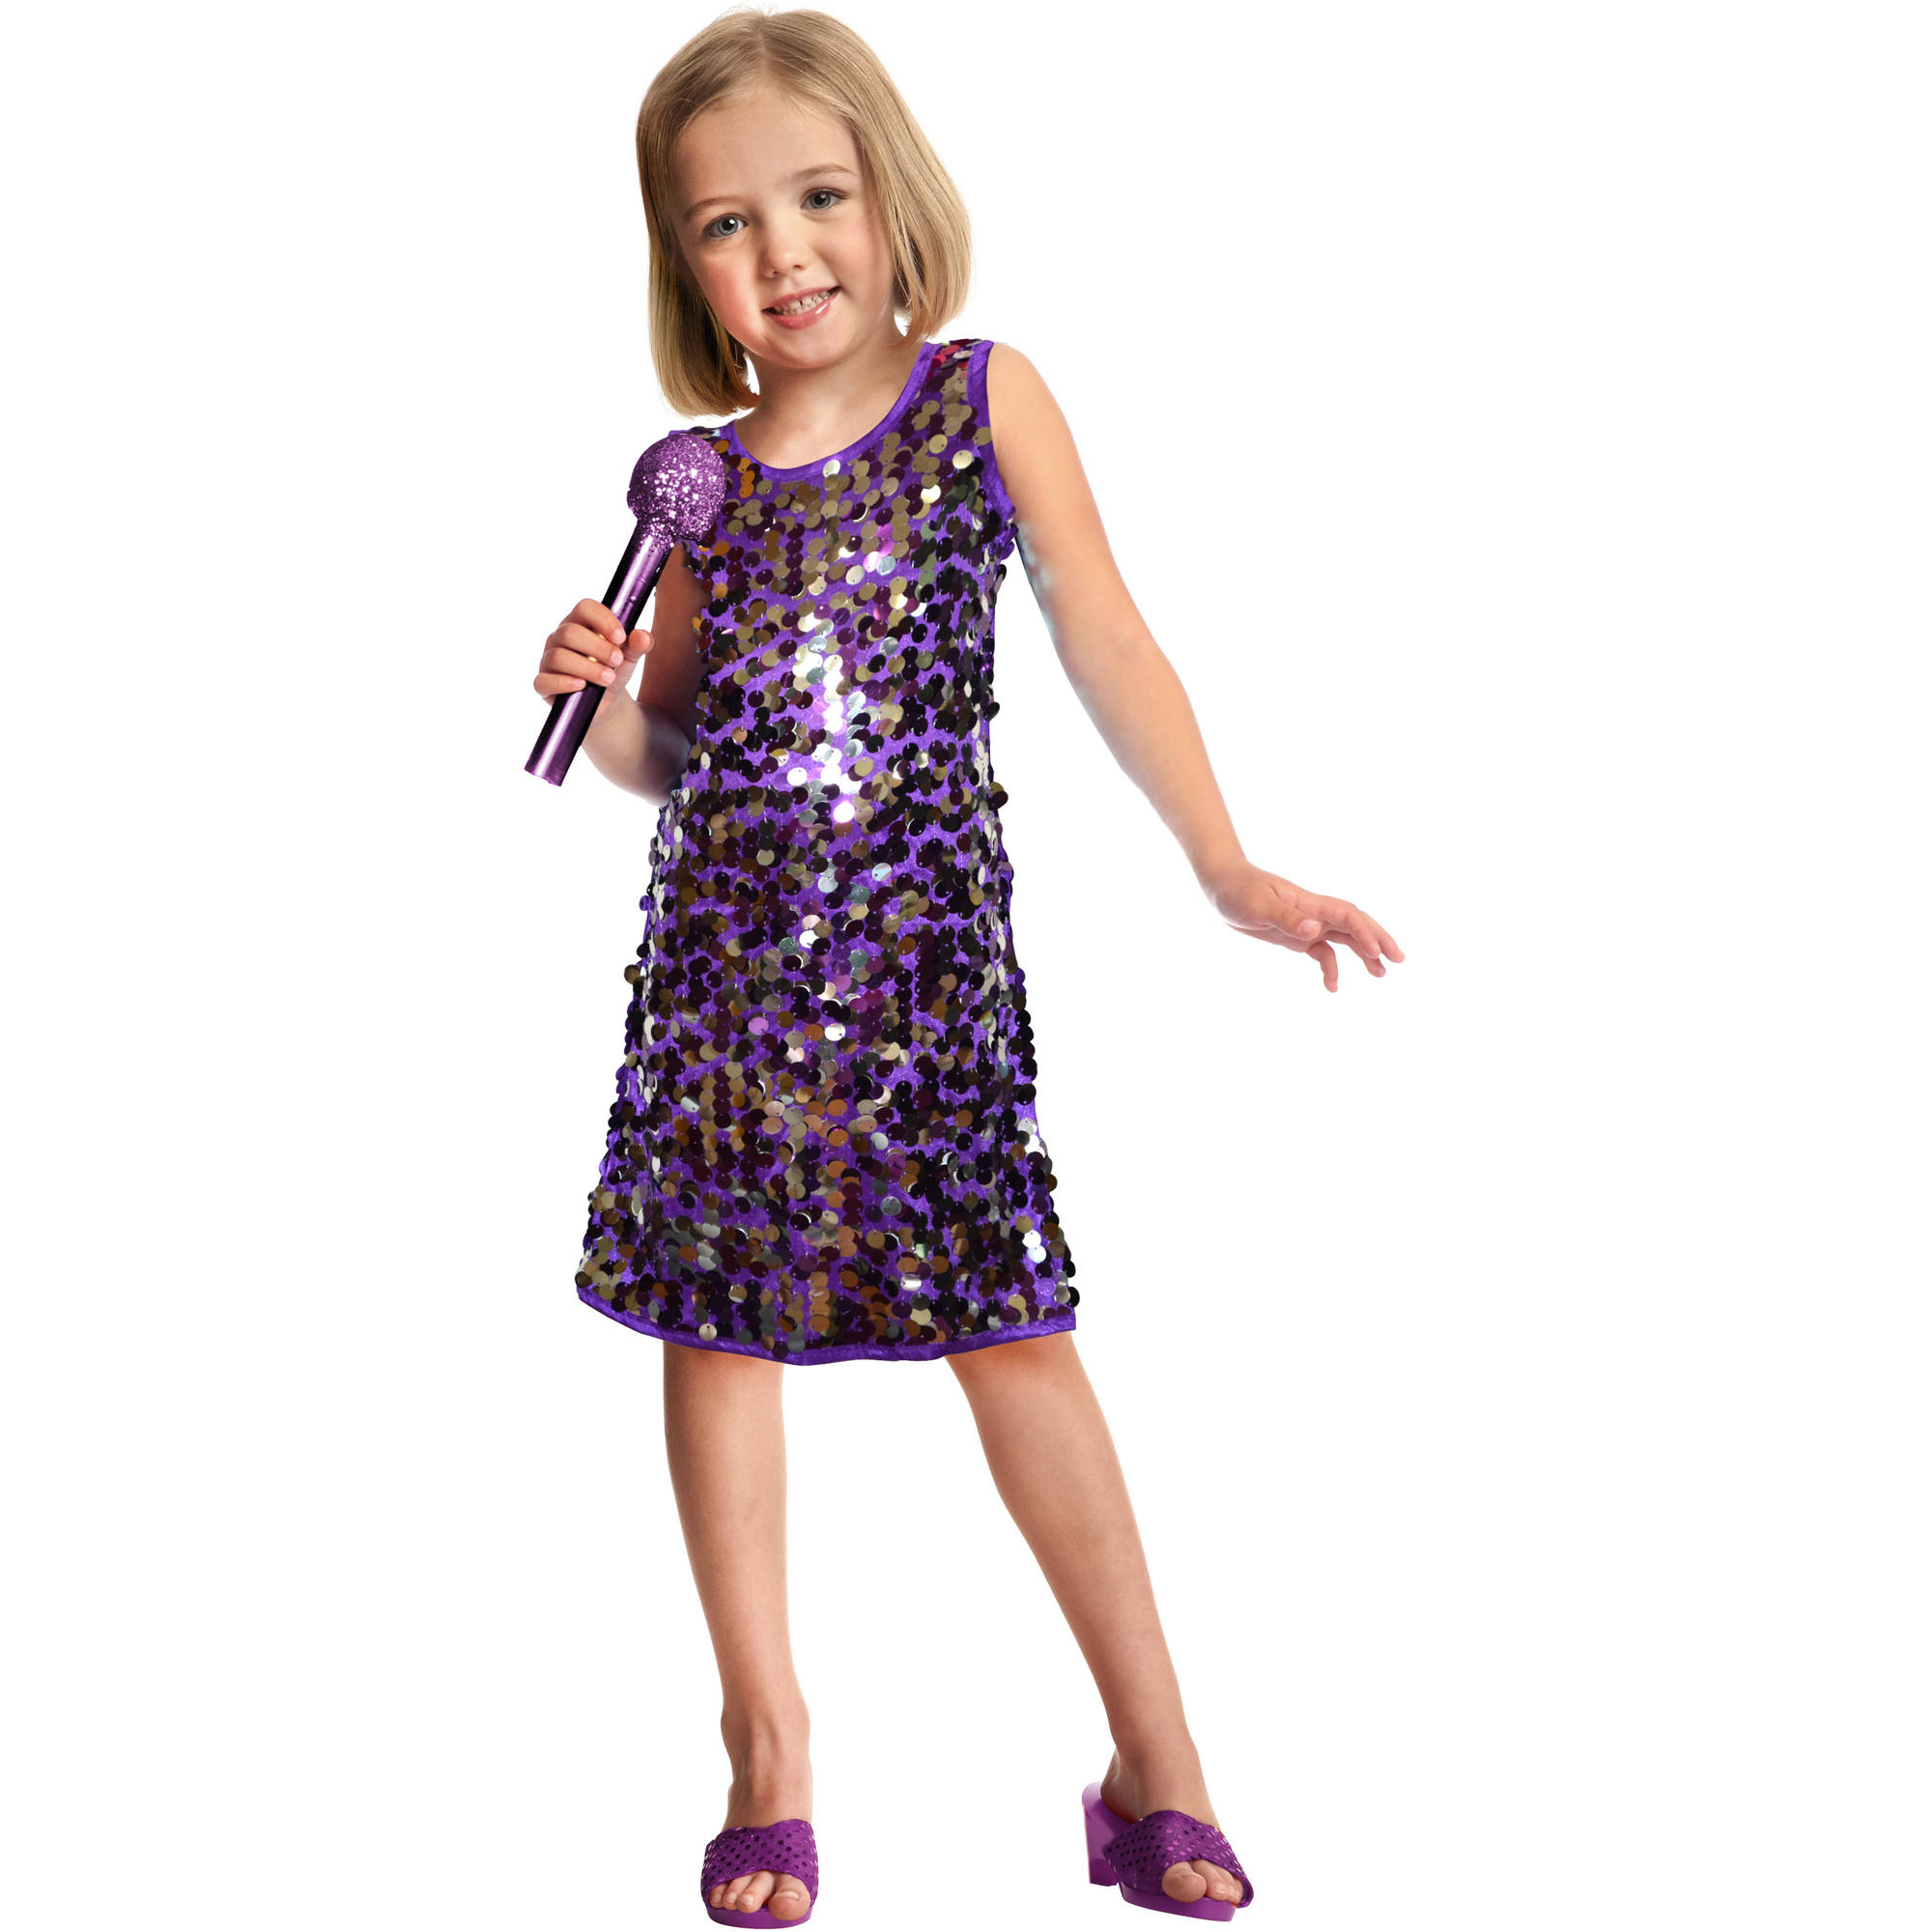 Sequins Pop Star Child Halloween Costume, Purple